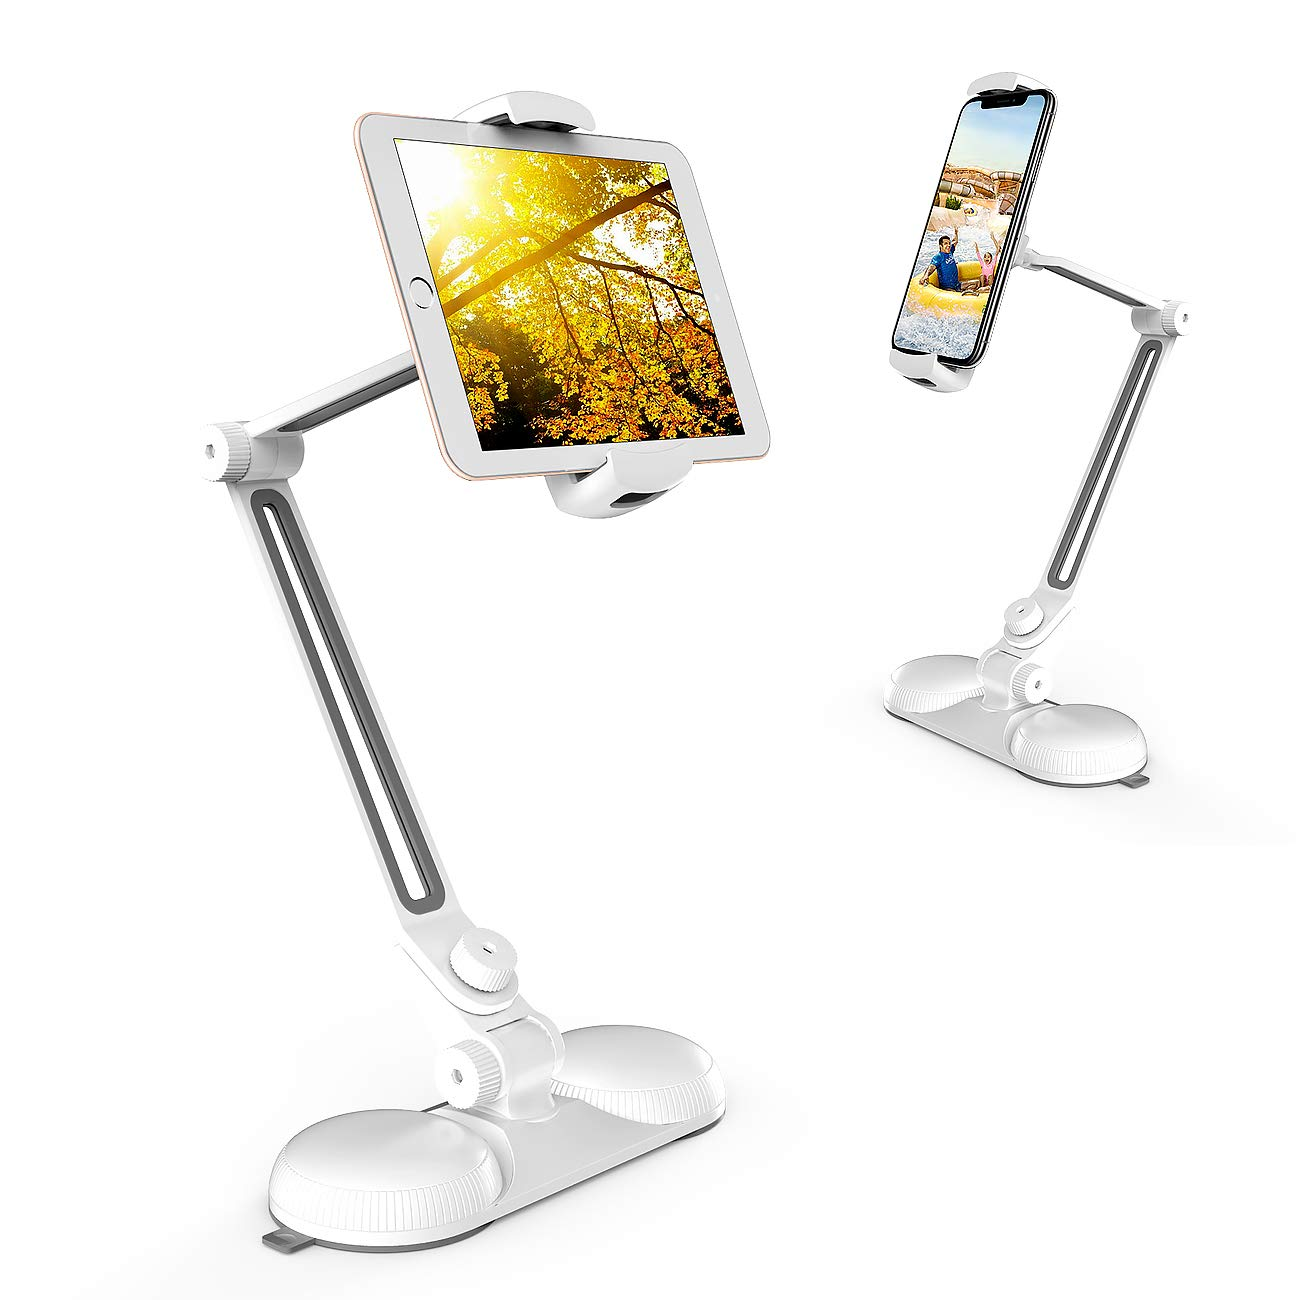 Tablet Stand, Adjustable Compatible iPad Stand, Universal 360° Swivel Collapsible Cell Phone Stand Holder with Suction Cup for Table, Glass, Kitchen &Office (fit for Width in 4.5-7.5'')